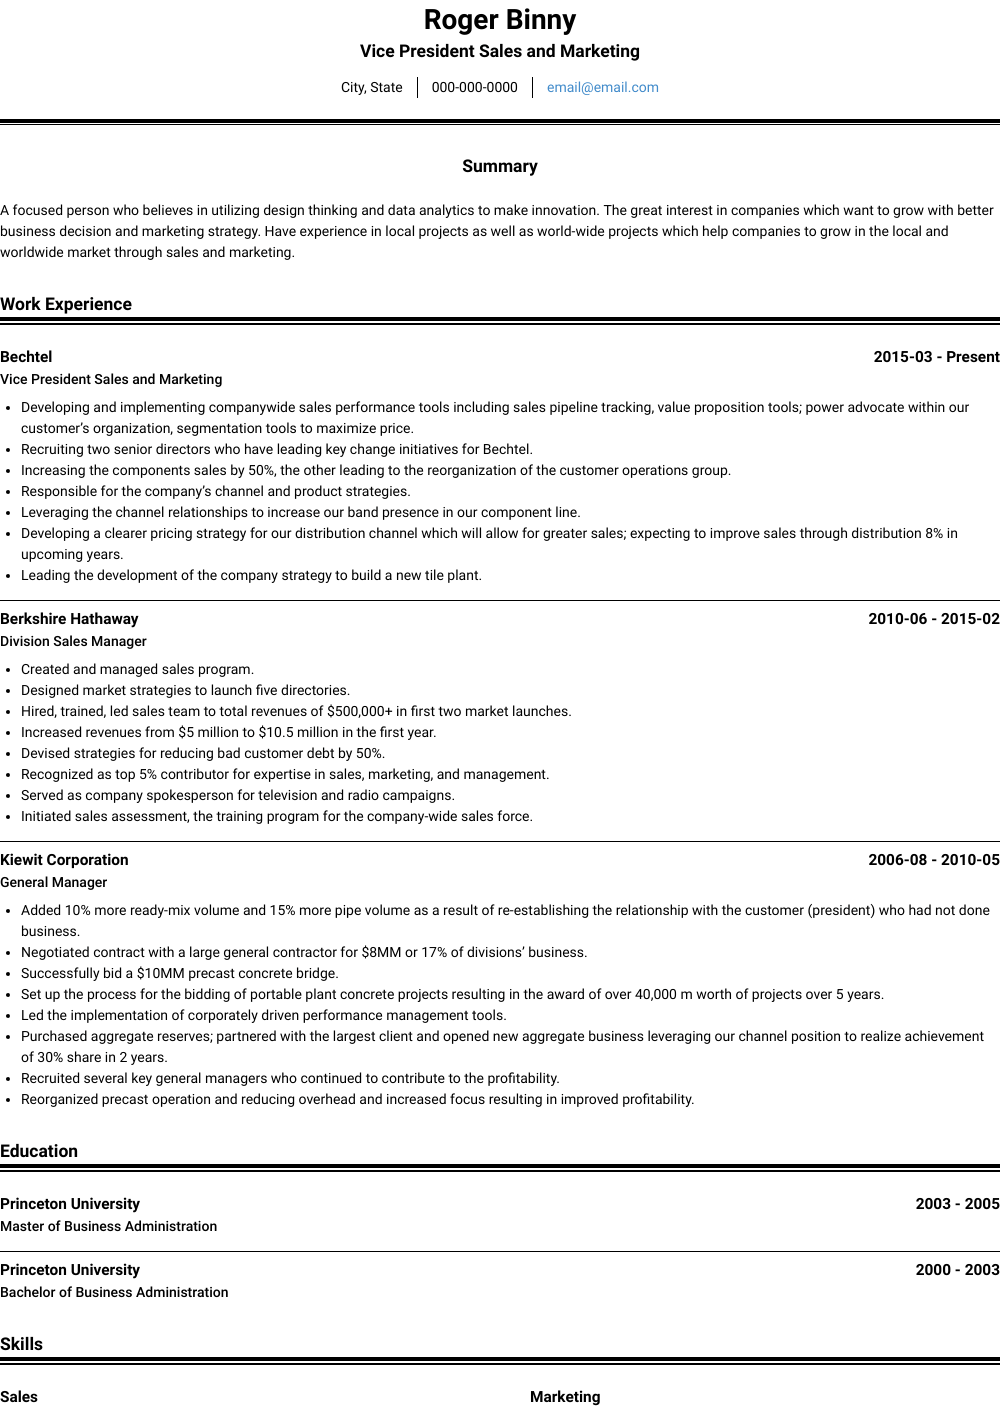 Sales And Marketing Resume Samples & Templates